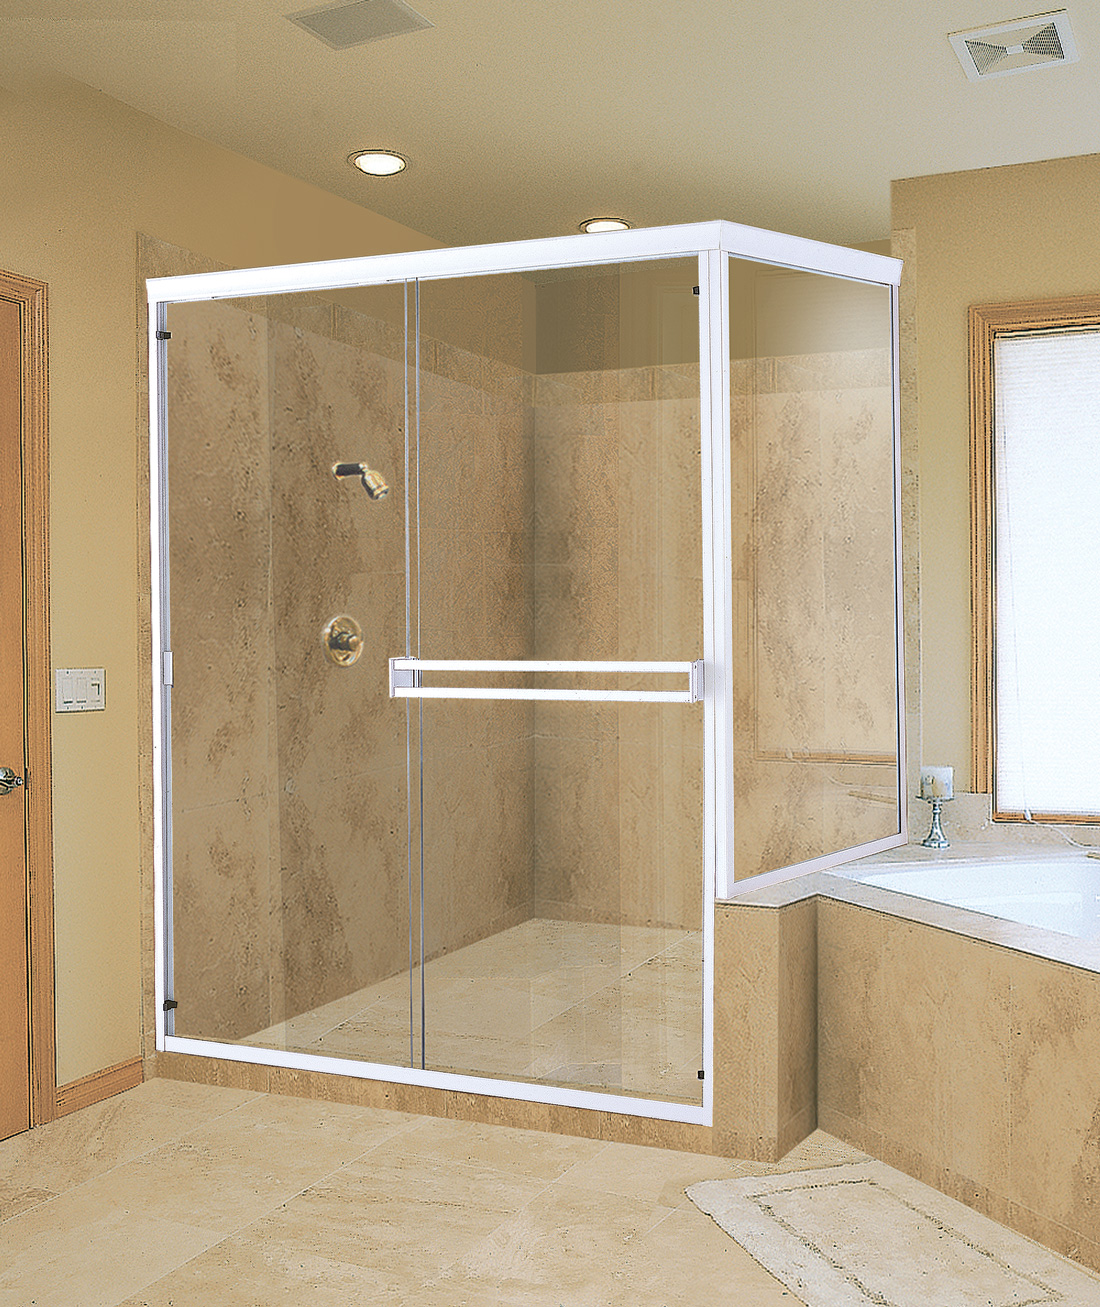 : frameless glass shower doors oil rubbed bronze featured top glass shower doors frameless ideas for bathroom decor